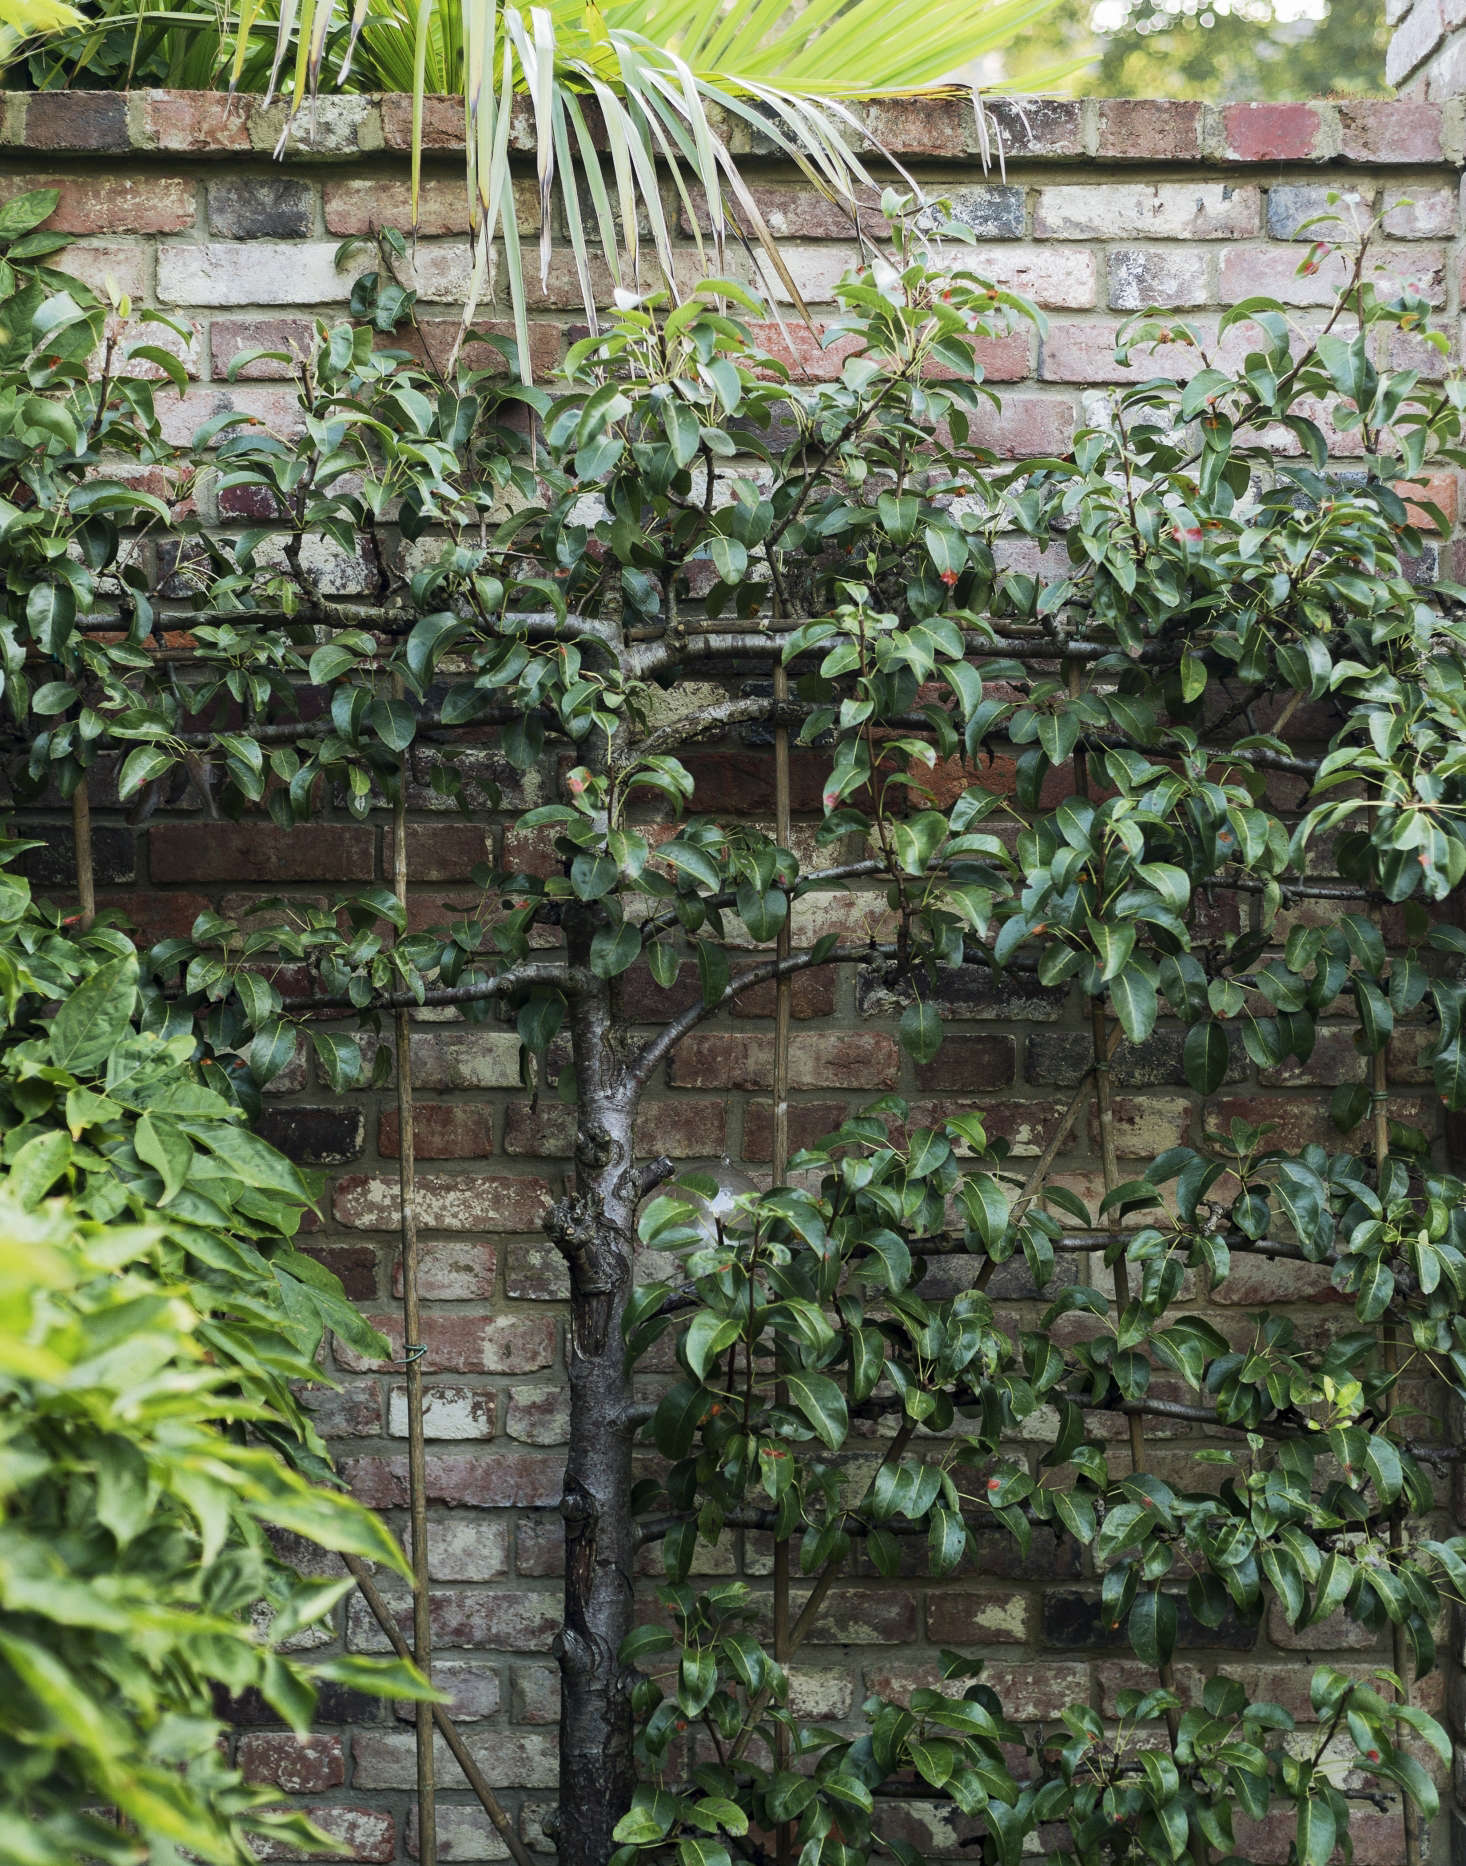 London-based antiques dealer Will Fisher grows fruit trees against a brick wall in his garden. Photograph by Matthew Williams for Gardenista.